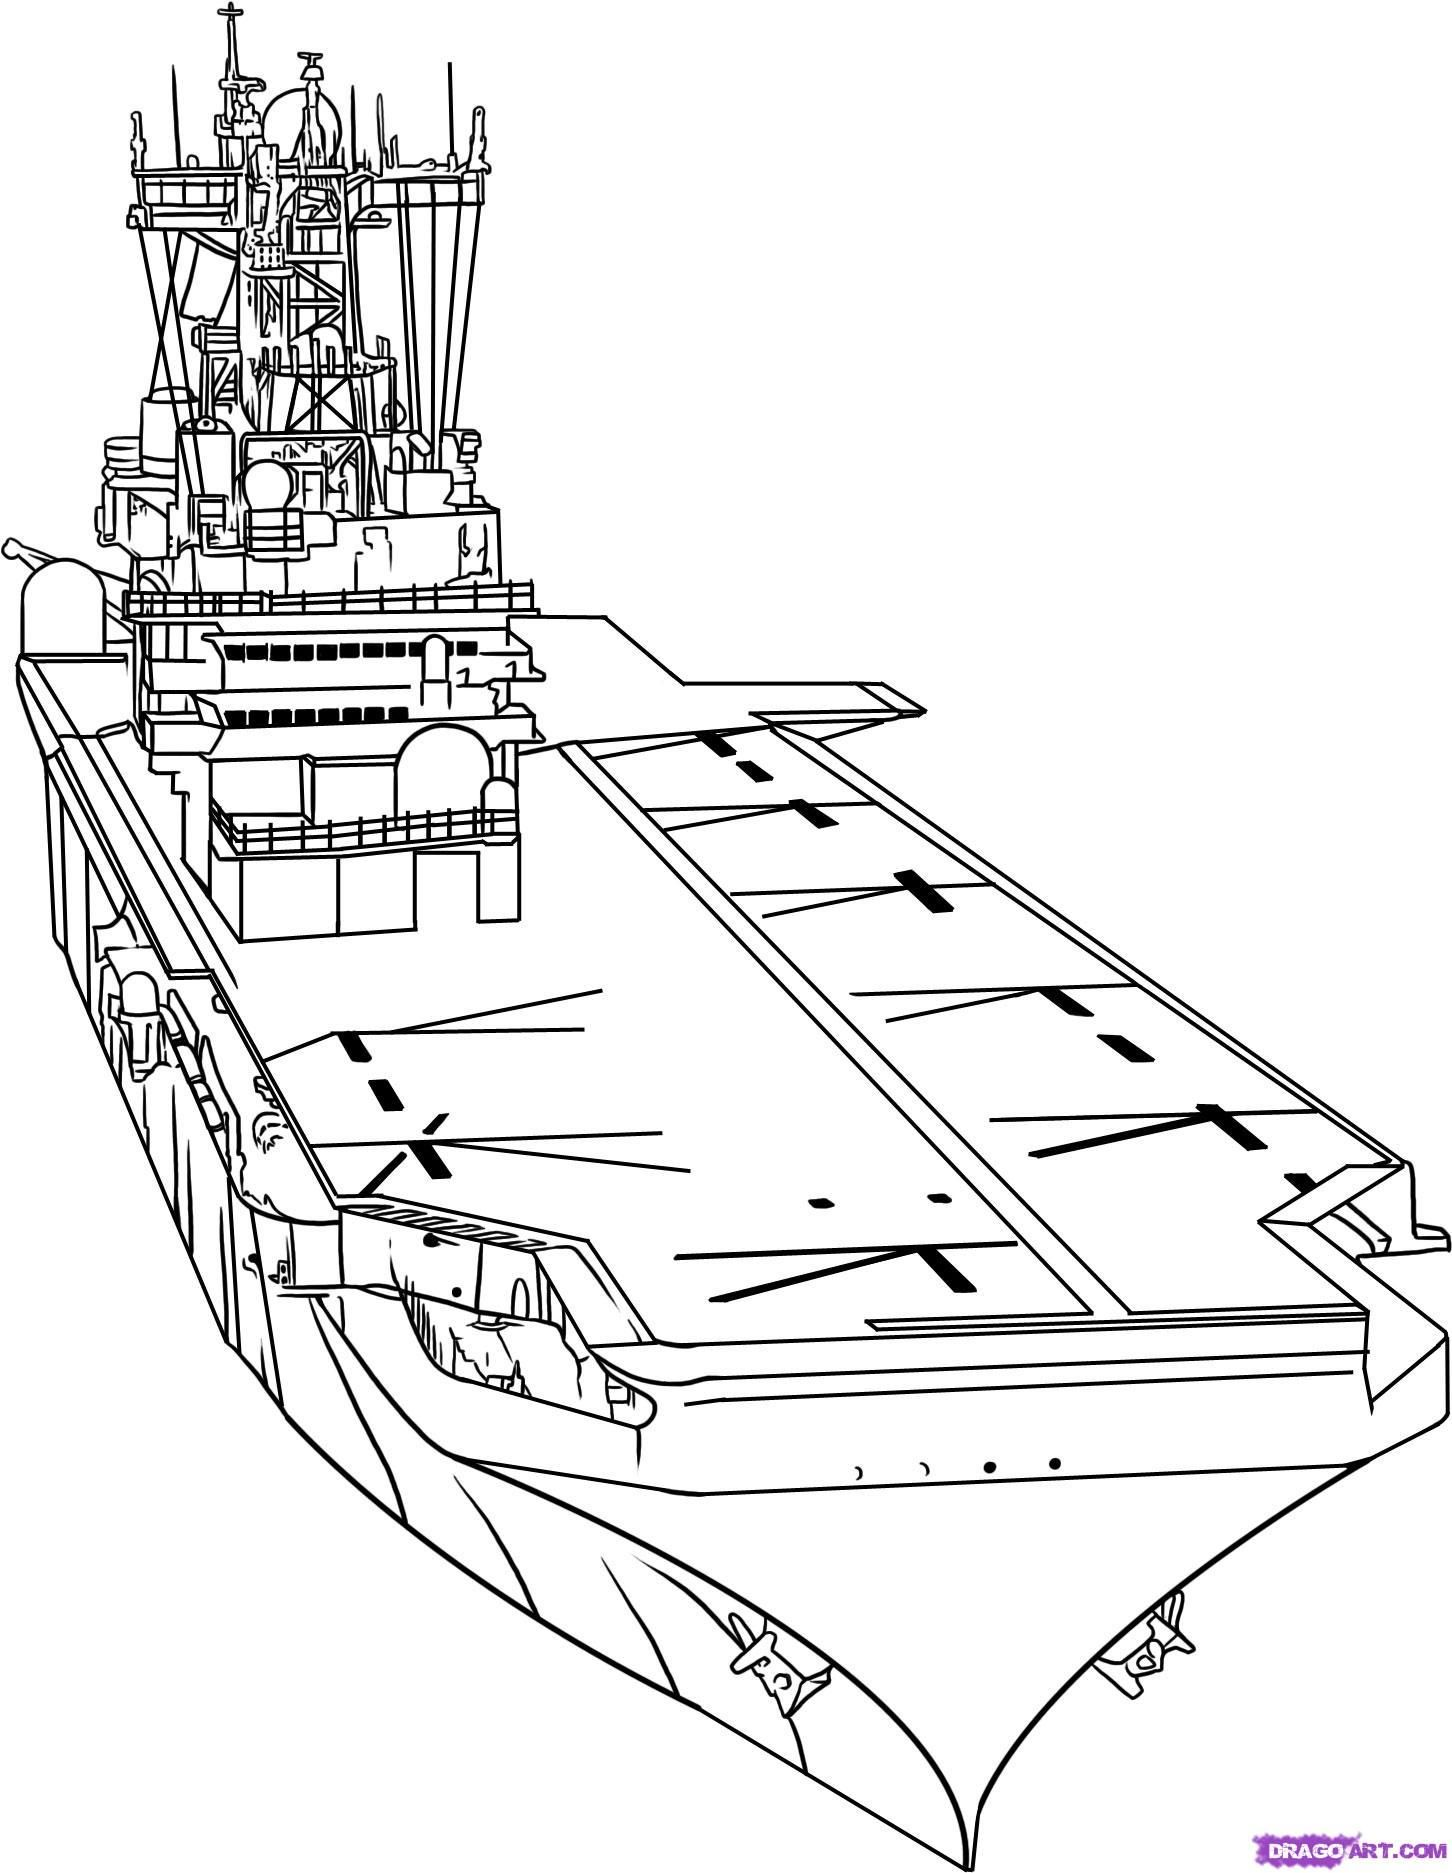 How to draw the Aircraft carrier with a pencil step by step